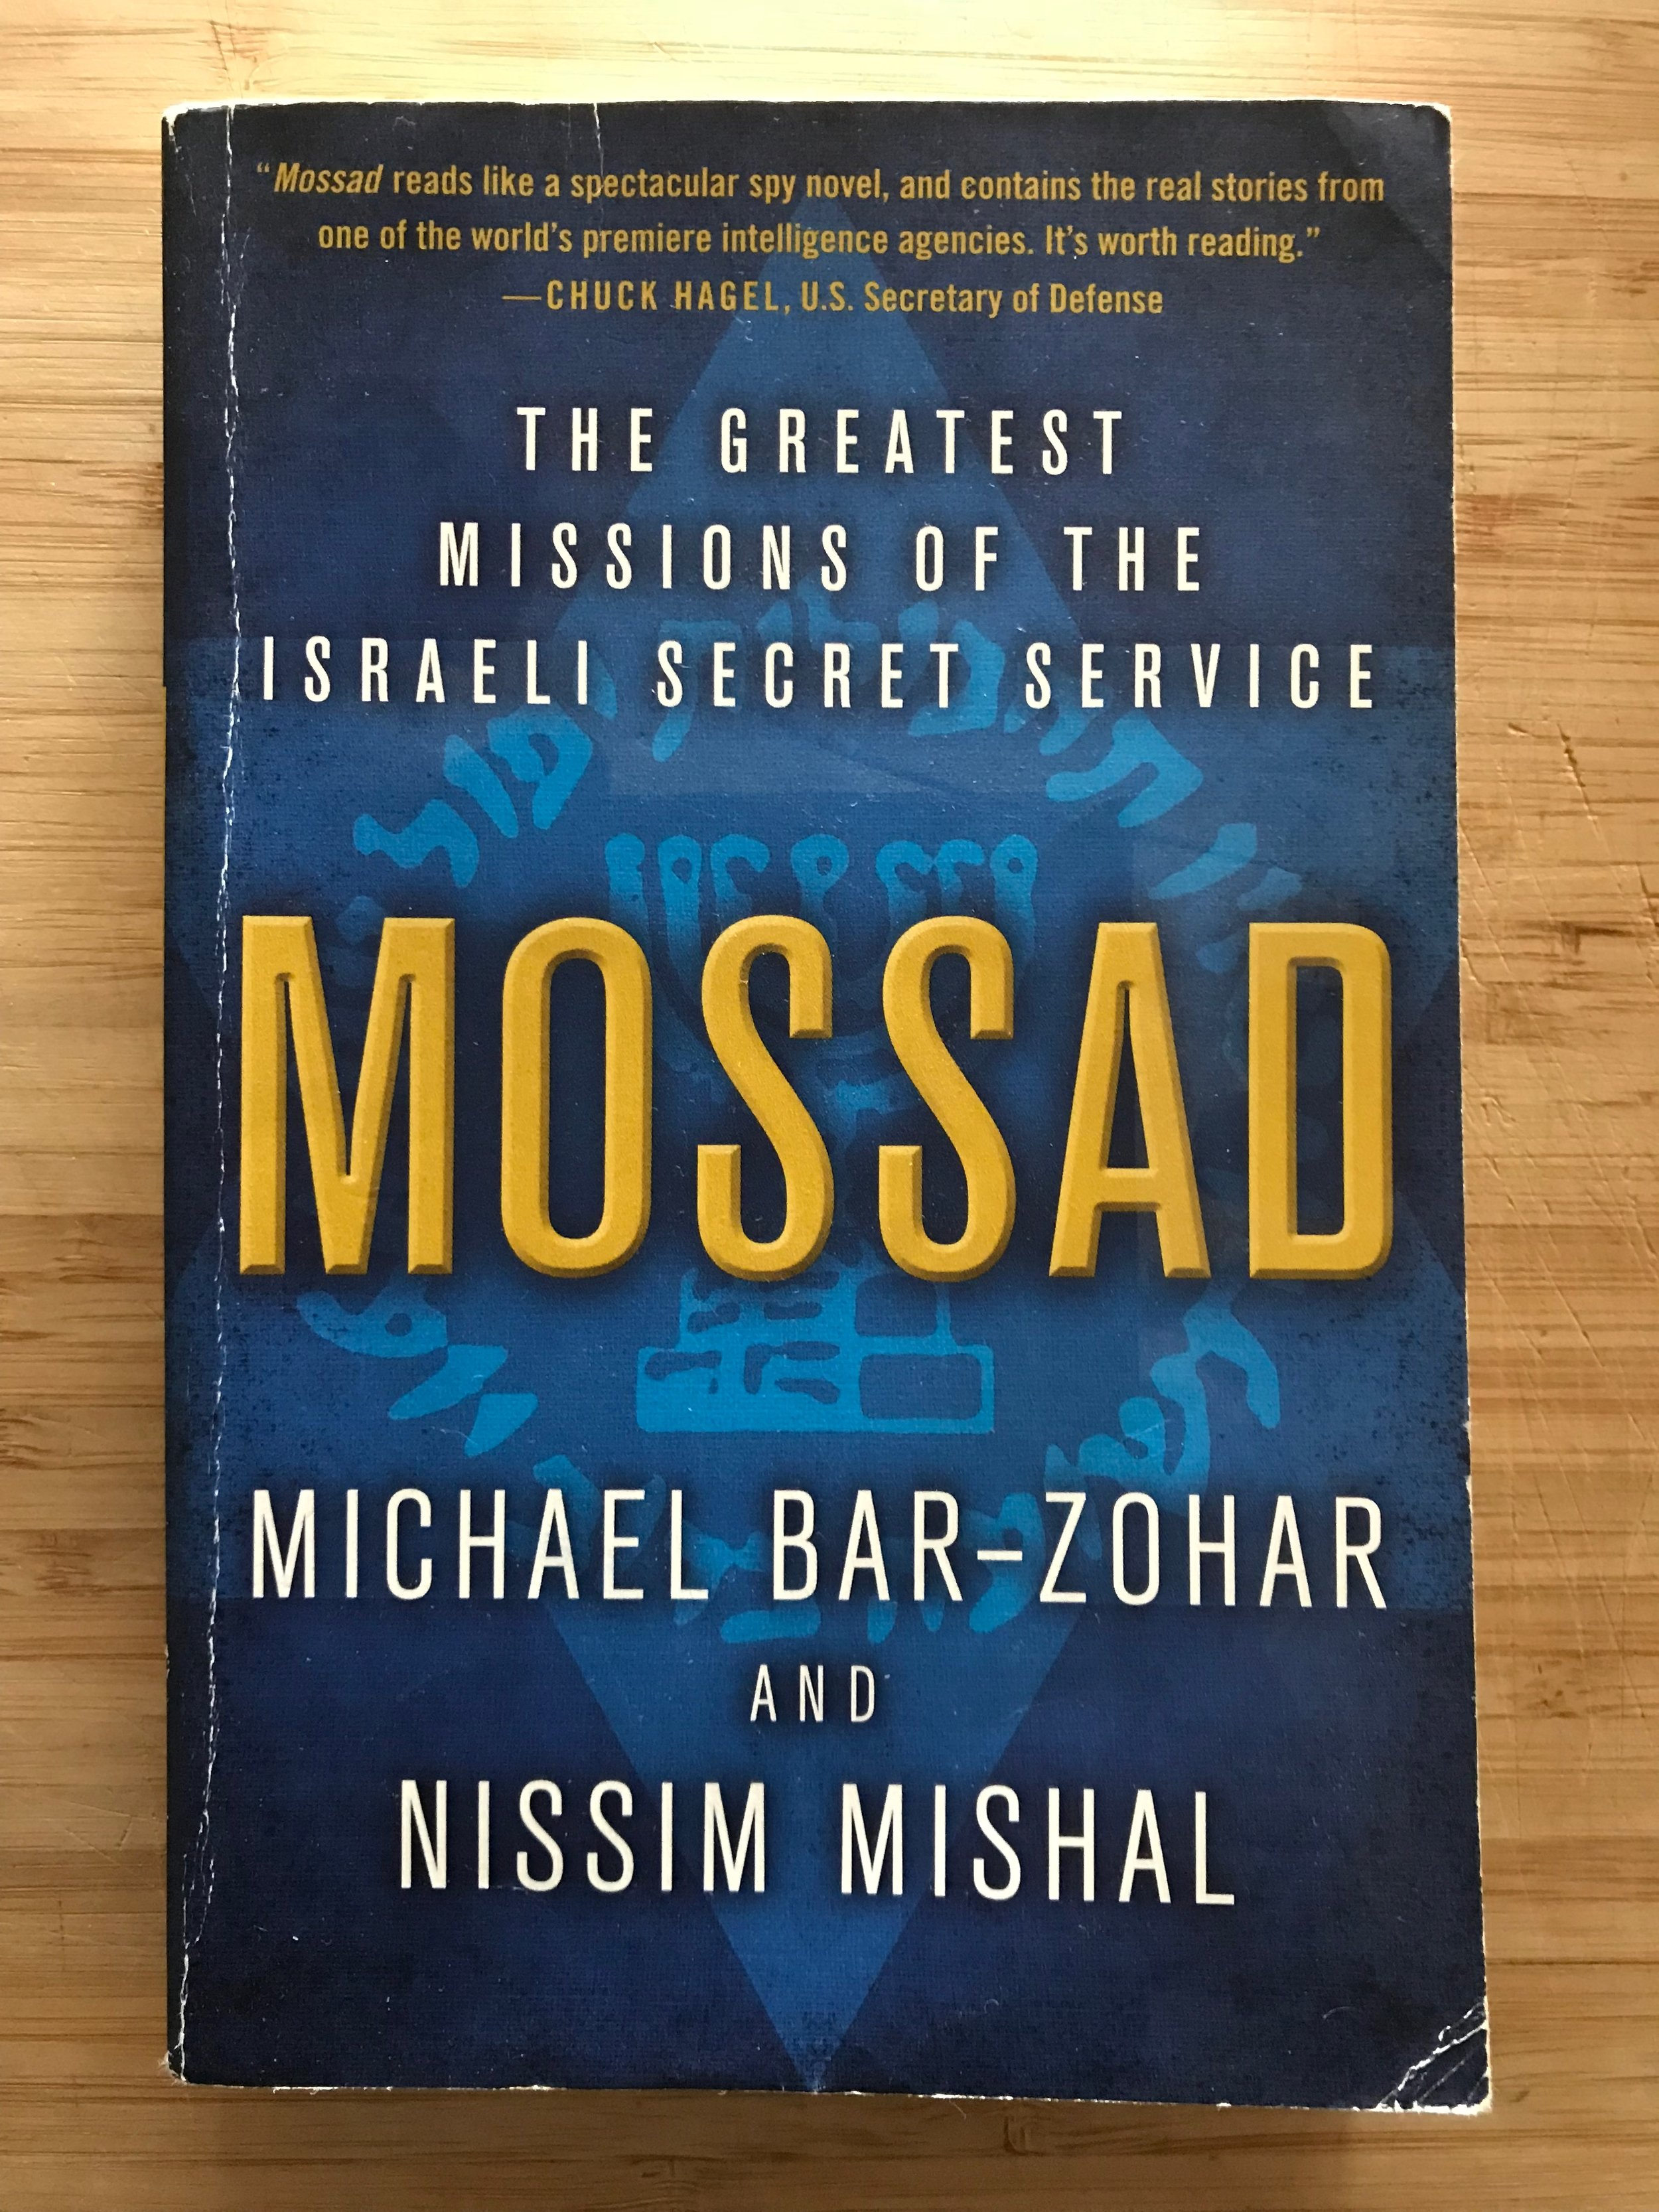 Mossad by Michael Bar-Zohar and Nissim Mishal